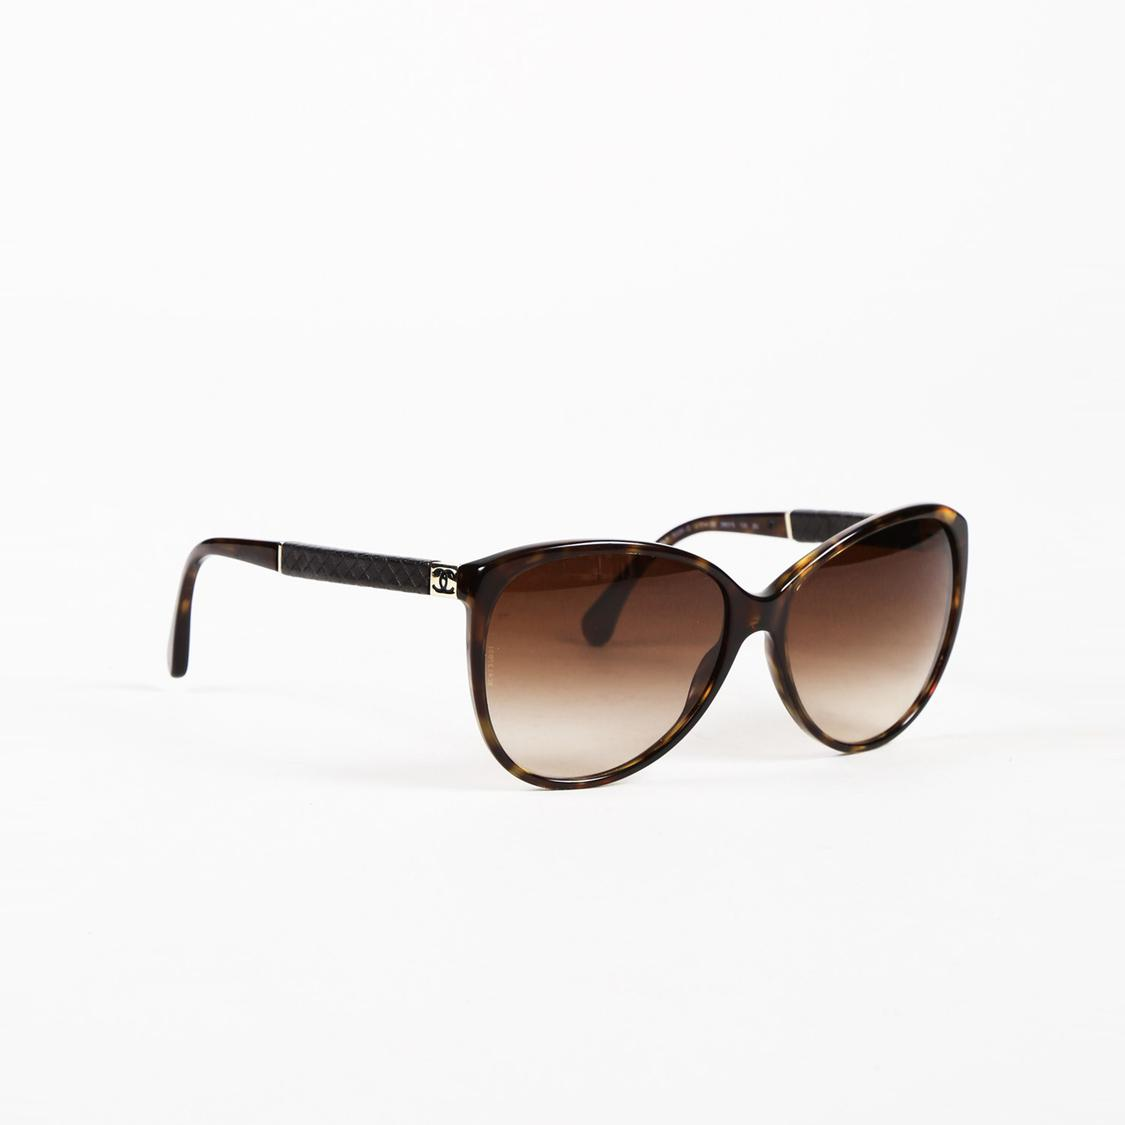 ce0b04f1665 Chanel Tortoiseshell Quilted  cc  Sunglasses in Black - Lyst